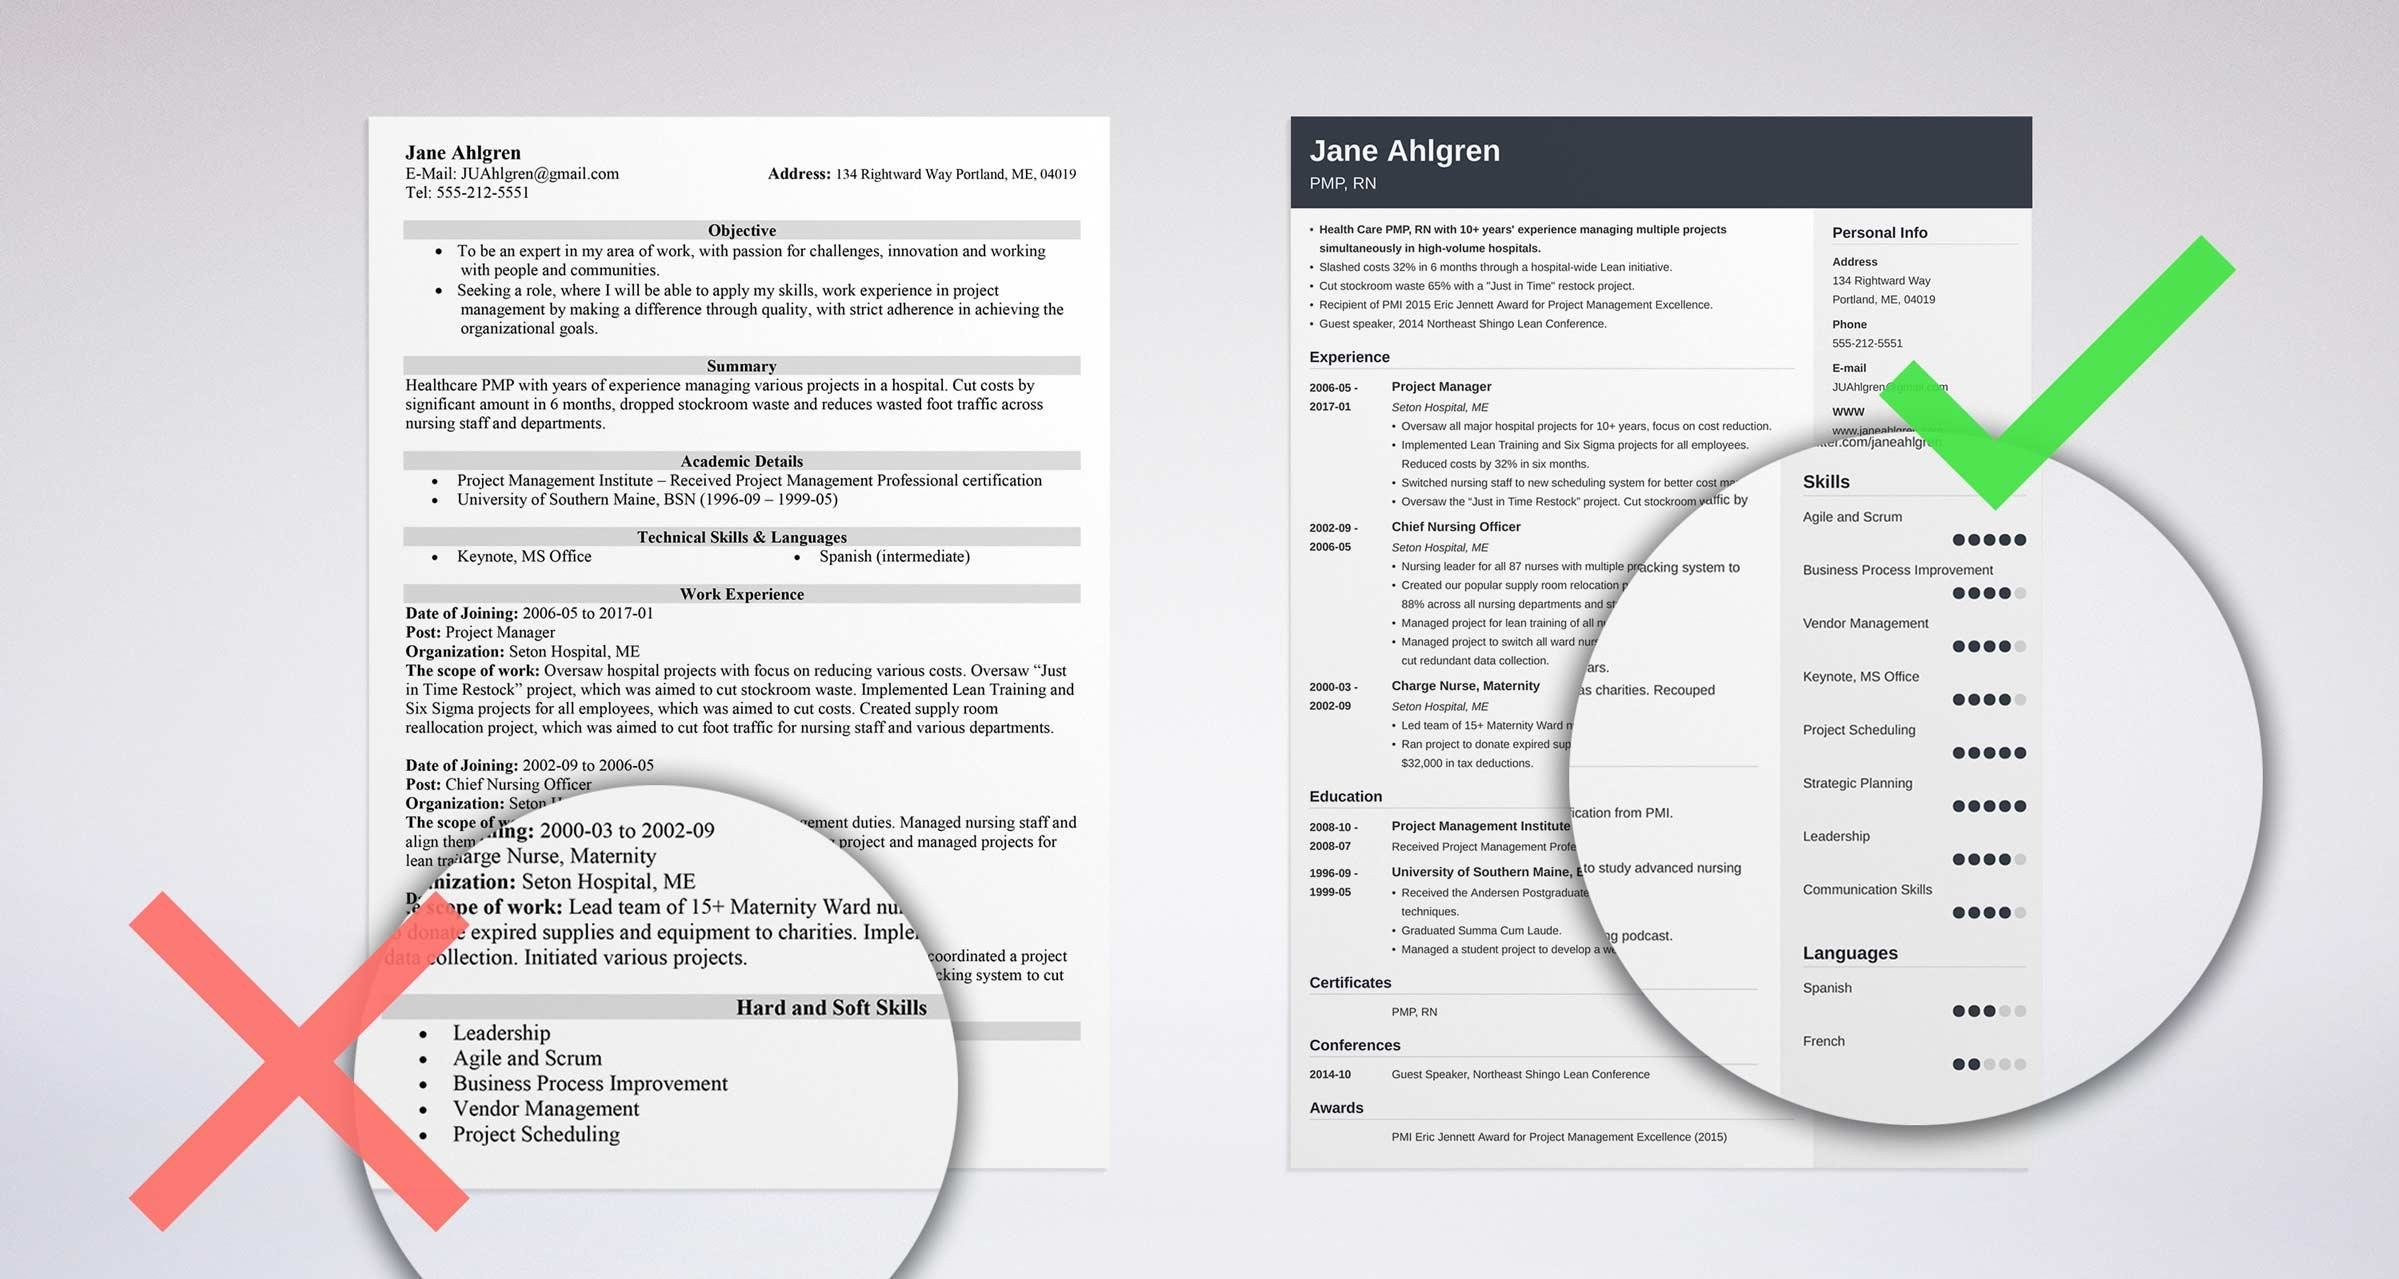 skills for resume best of examples all jobs you should put on your resume1 canva fresher Resume Skills You Should Put On Your Resume